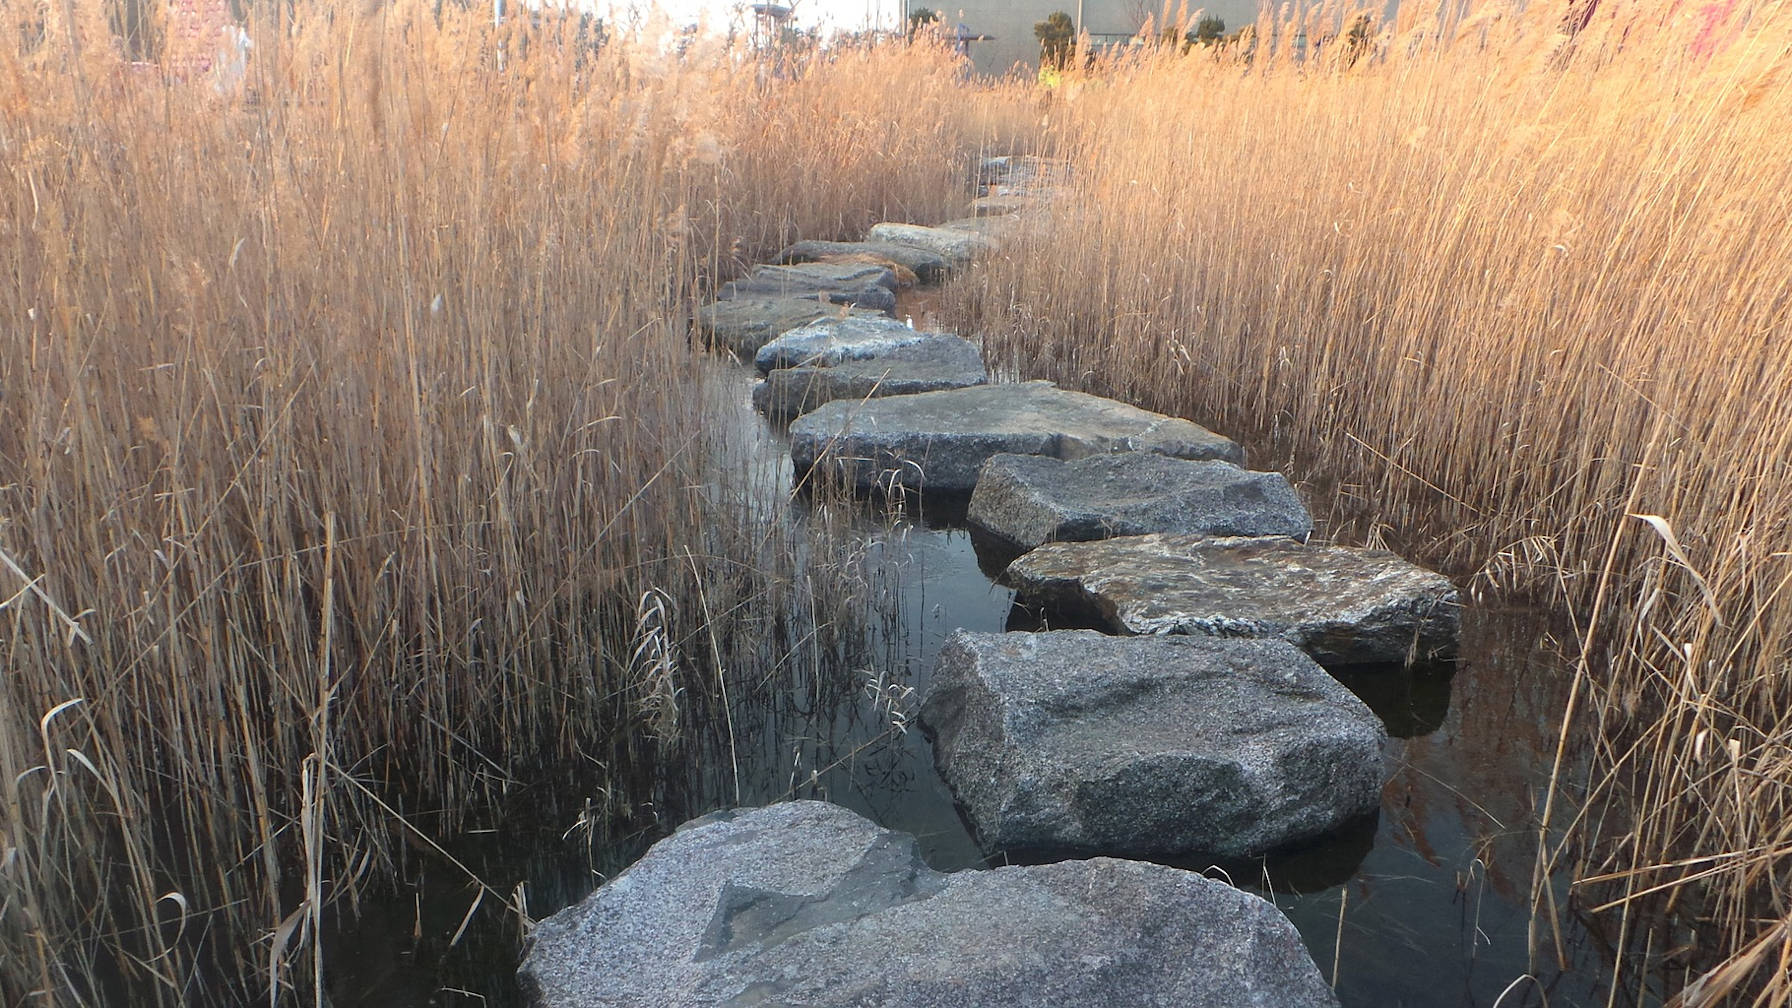 Decorative image of stepping stones between reeds.